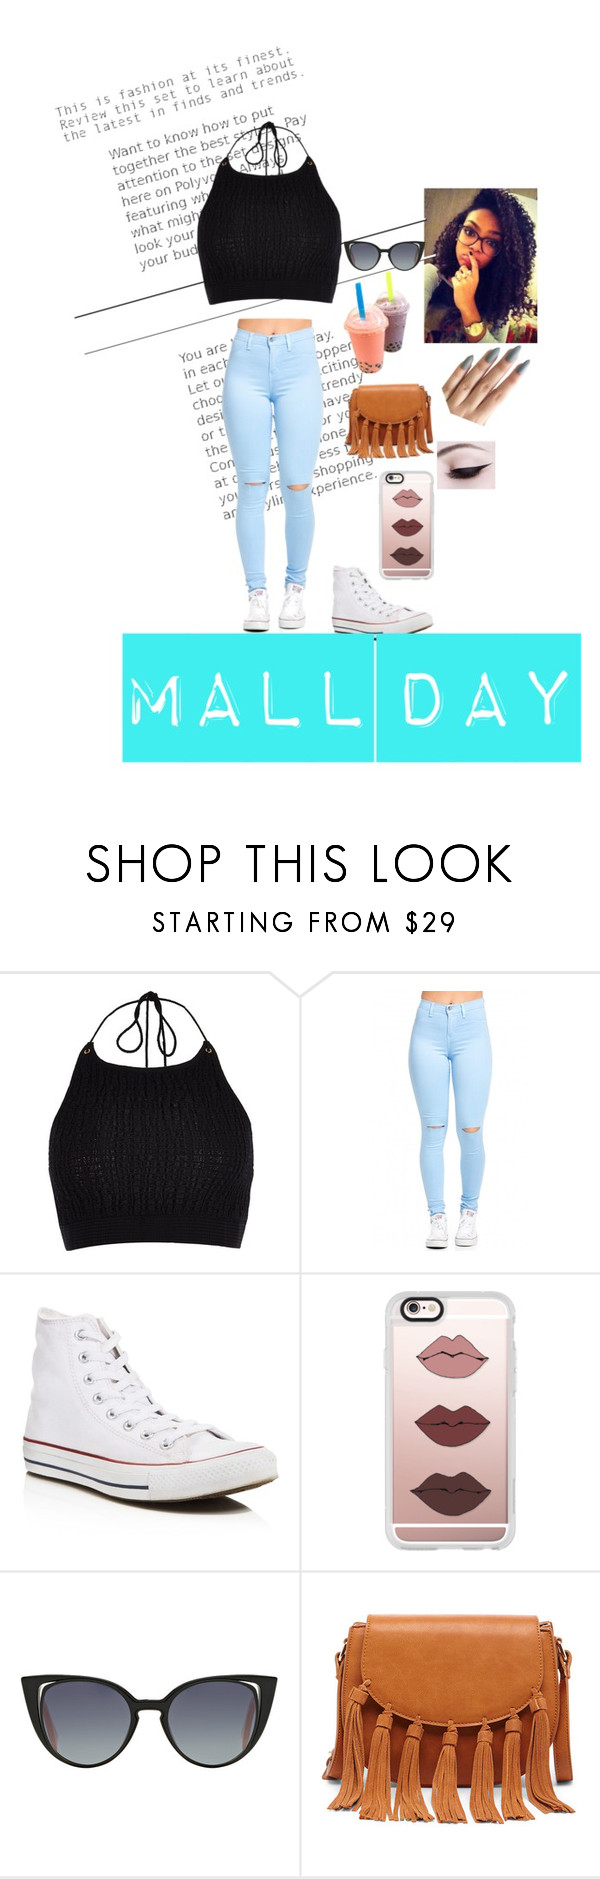 """""""Mall day"""" by royalinternetqueen2 ❤ liked on Polyvore featuring River Island, Converse, Casetify, Fendi and Sole Society"""